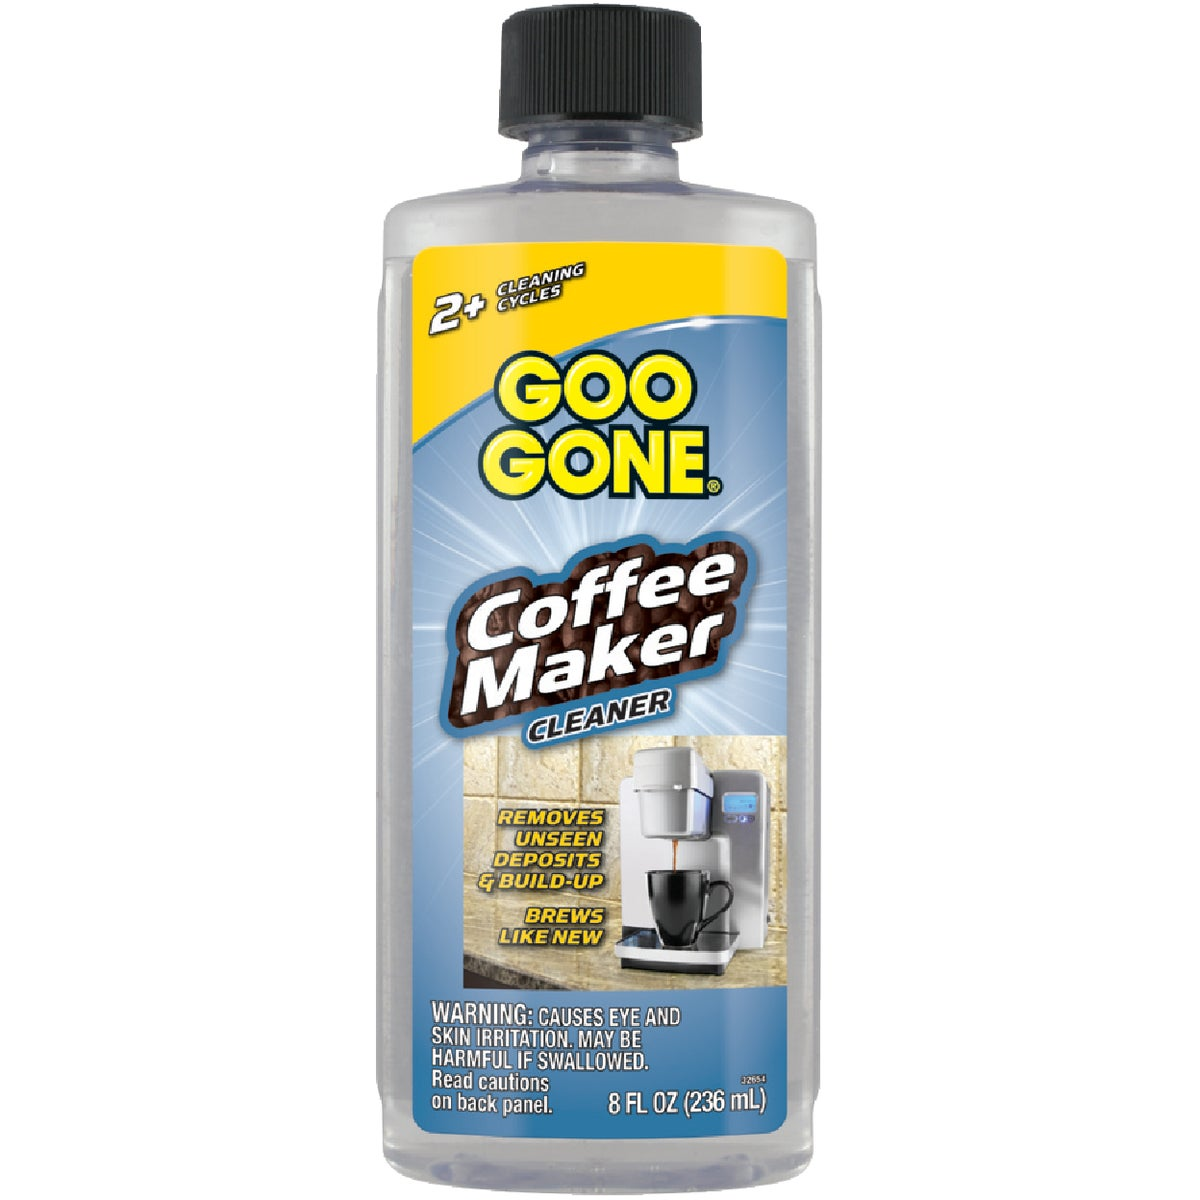 8OZ COFFEE MAKER CLEANER - 1791 by Magic Ntrl Magic Sci